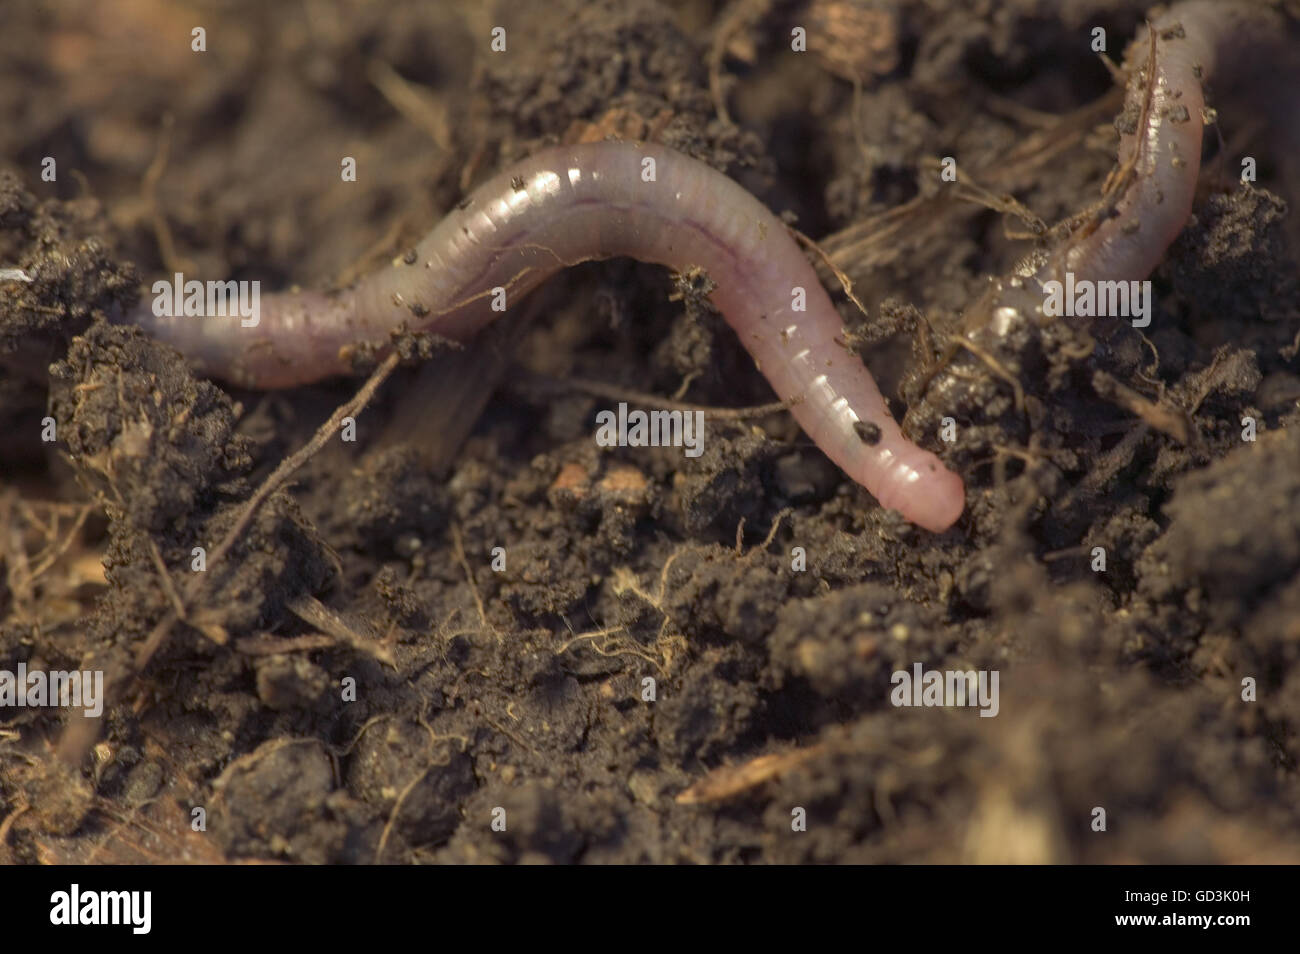 Earthworm crawling on soil in a compost pile. Stock Photo